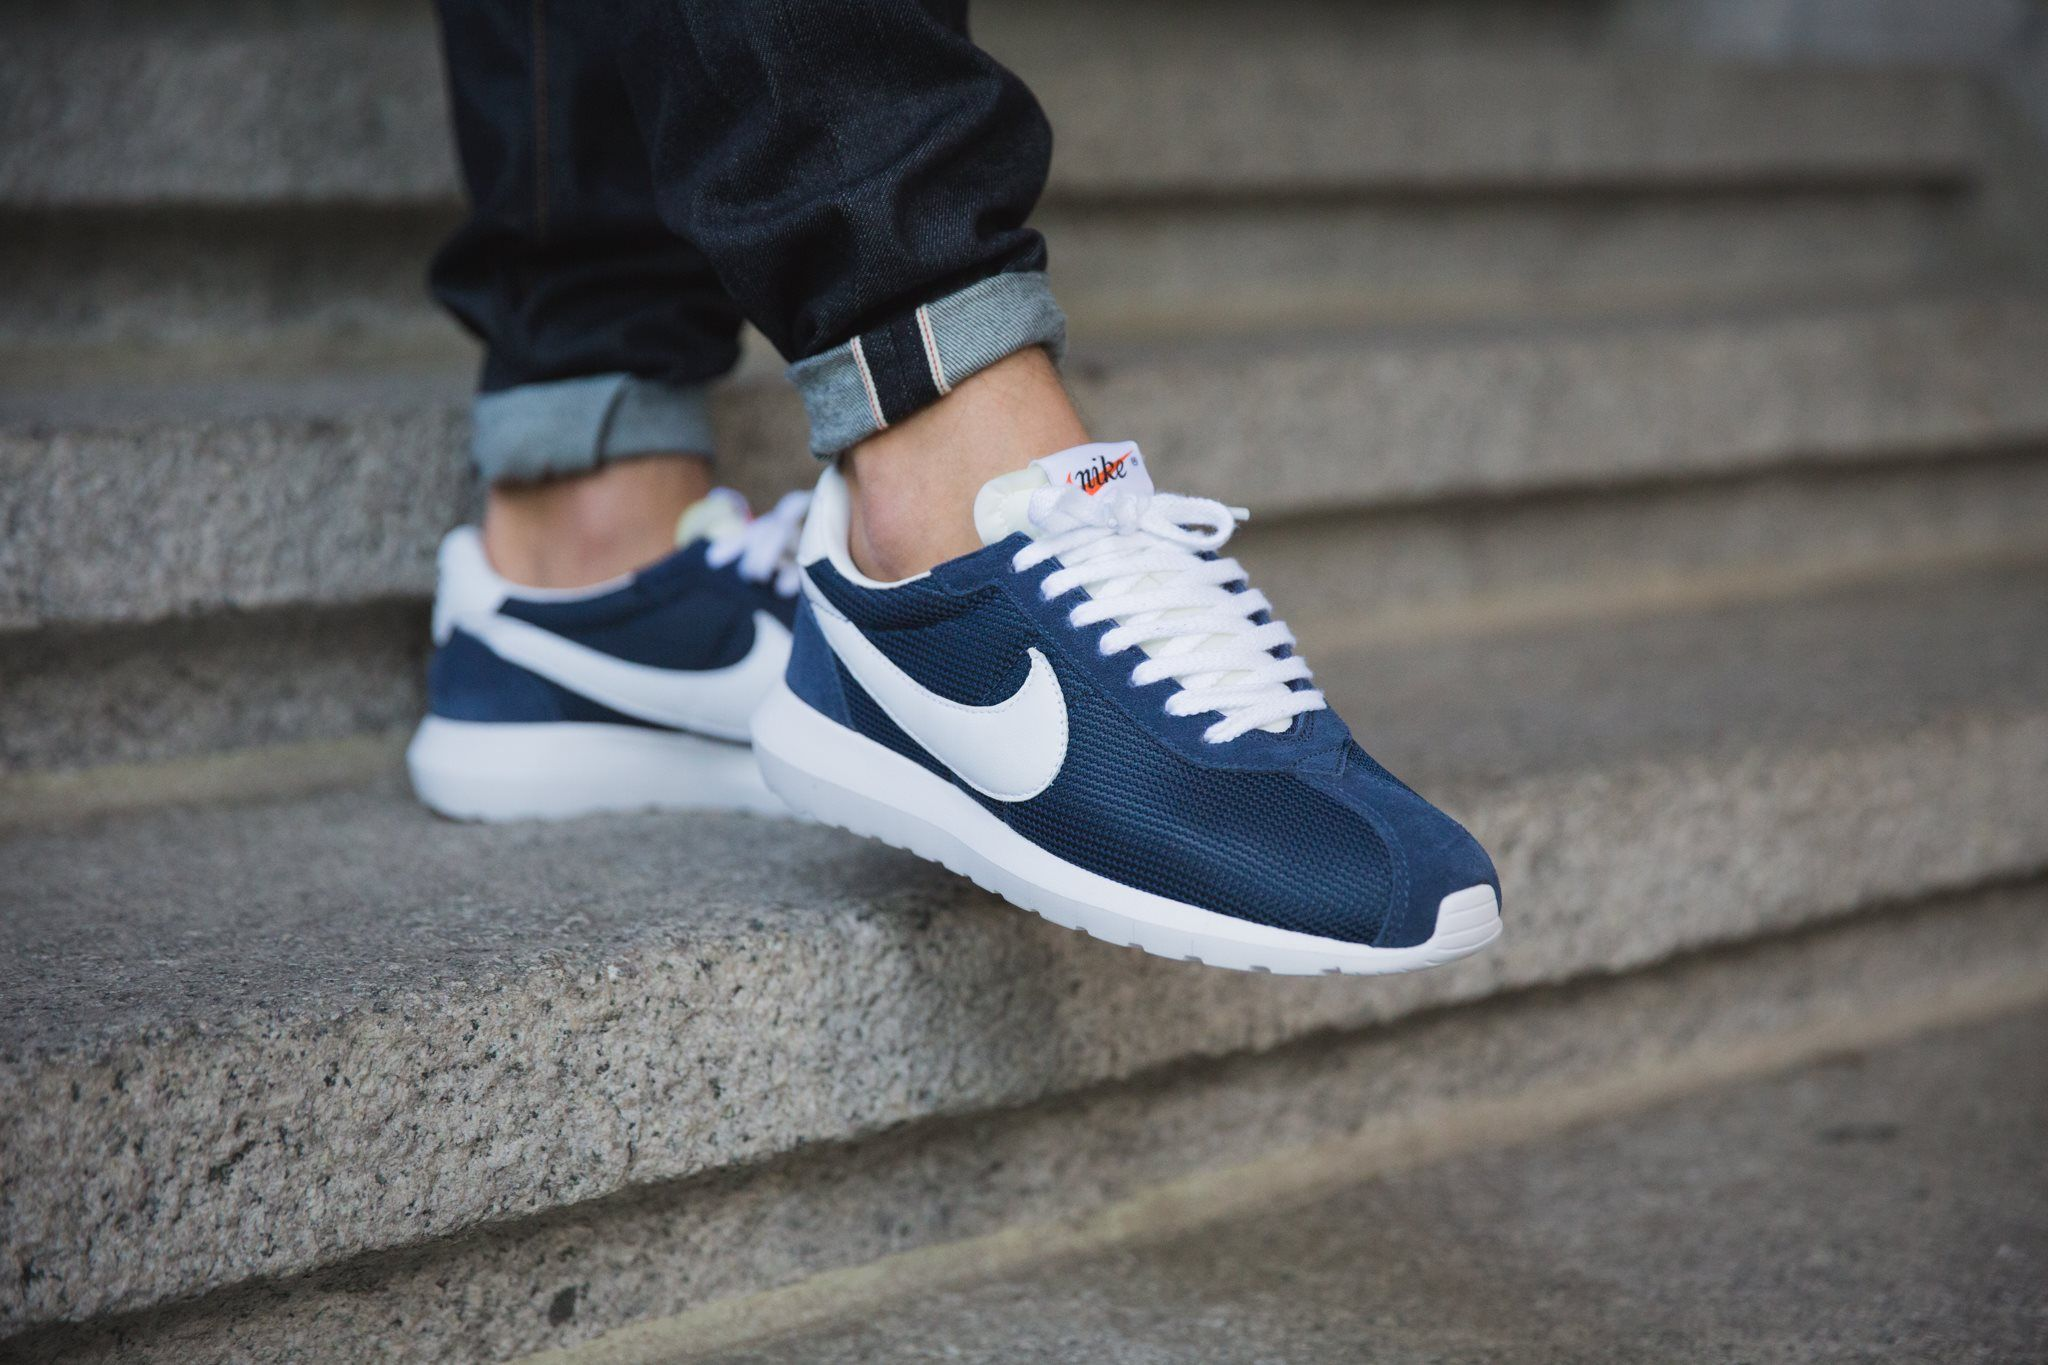 buy cheap a5973 1af19 Another Look At The Nike Roshe LD-1000 in Obsidian